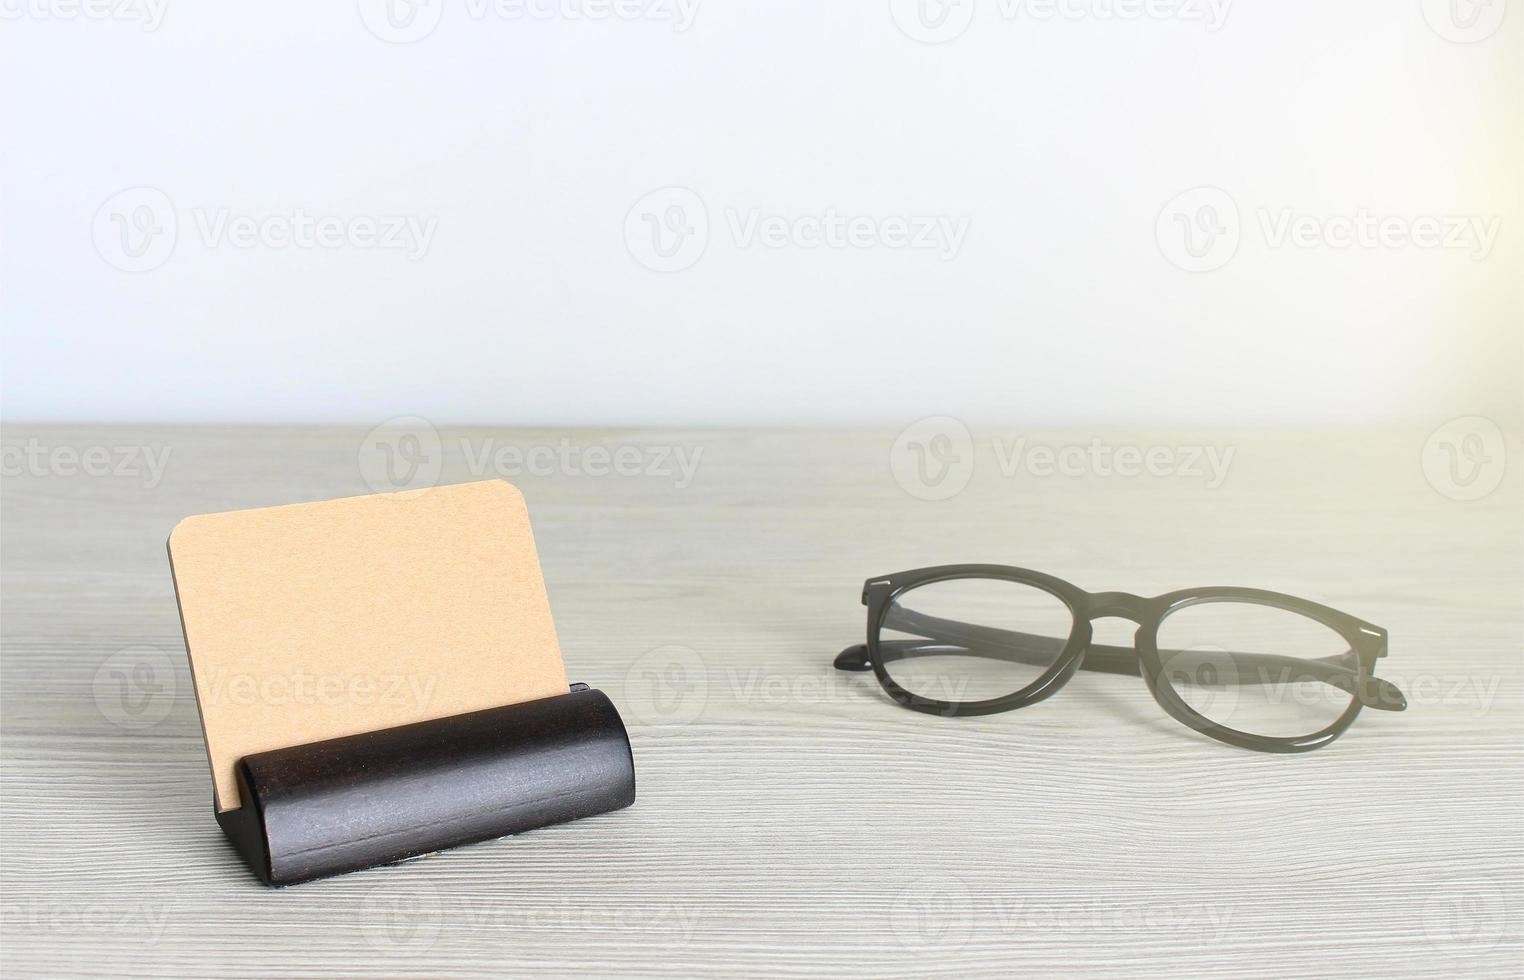 Blank business cards and glasses on wooden office table photo